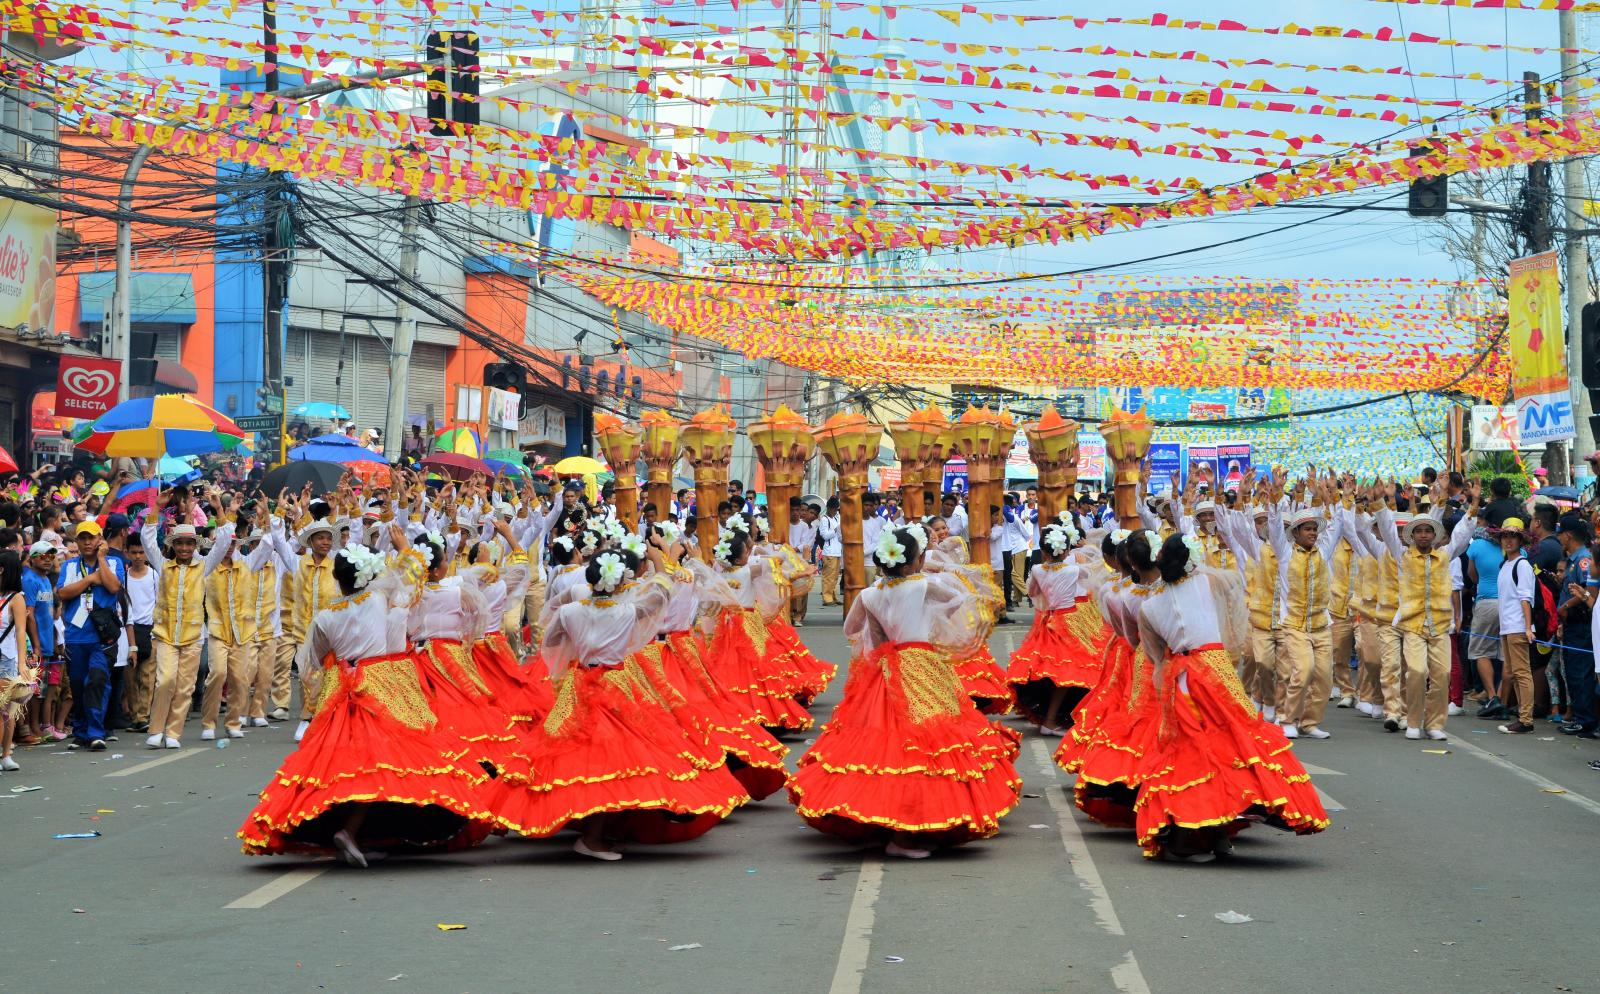 Volunteers can experience local culture during their English language course in the Philippines.